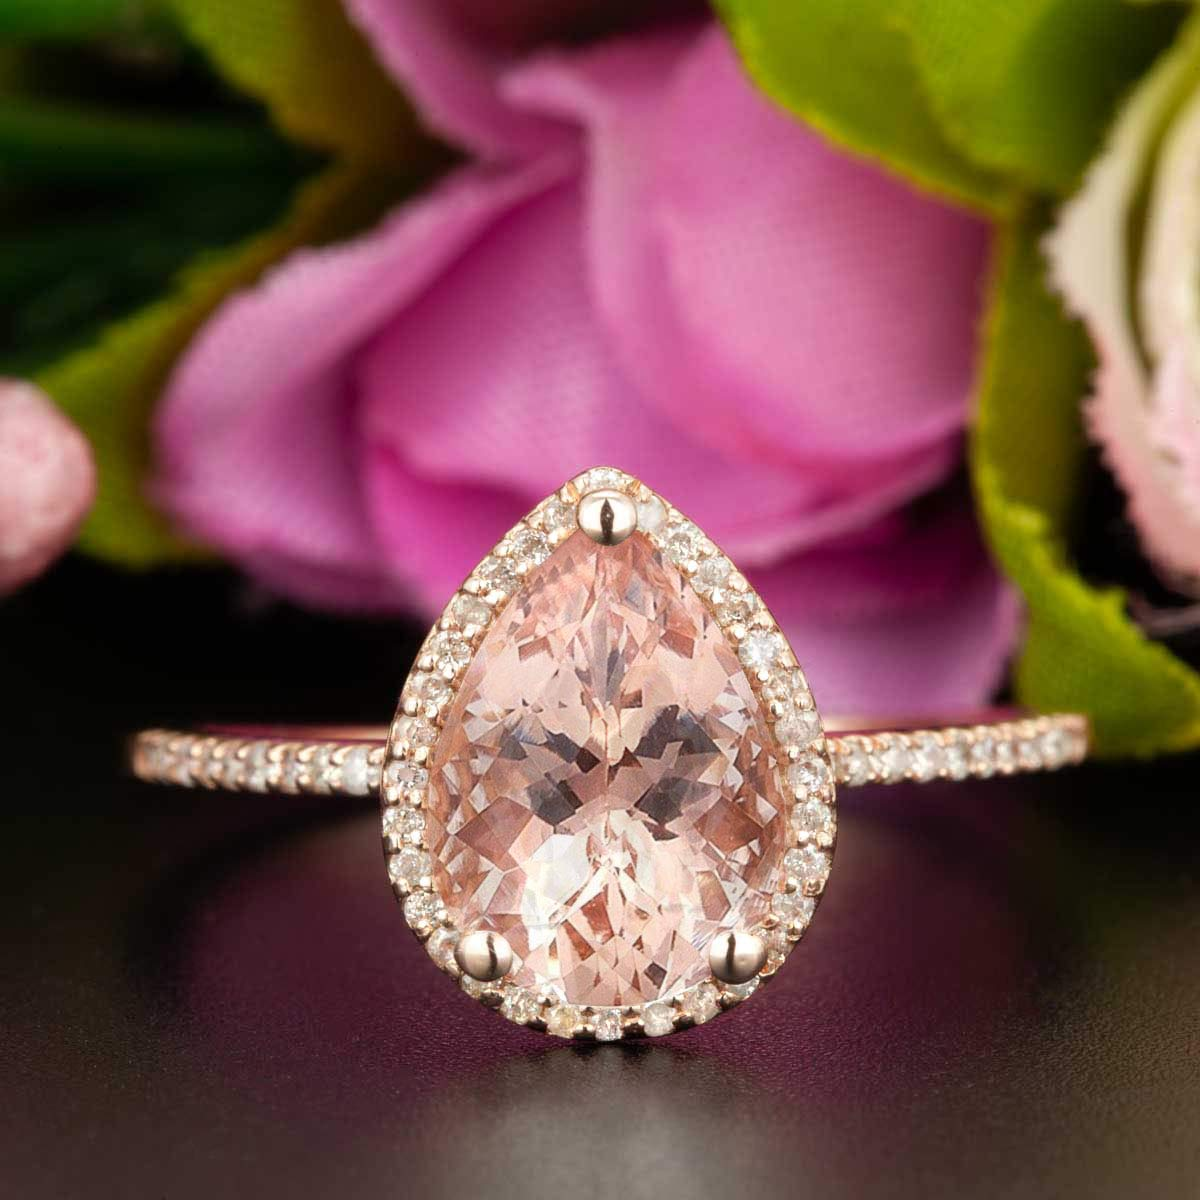 e41b9e4ab0e109 Get Quotations · Luxurious Huge 2.50 Carat Antique Design Pear cut Morganite  and Diamond Halo Engagement Ring for Women